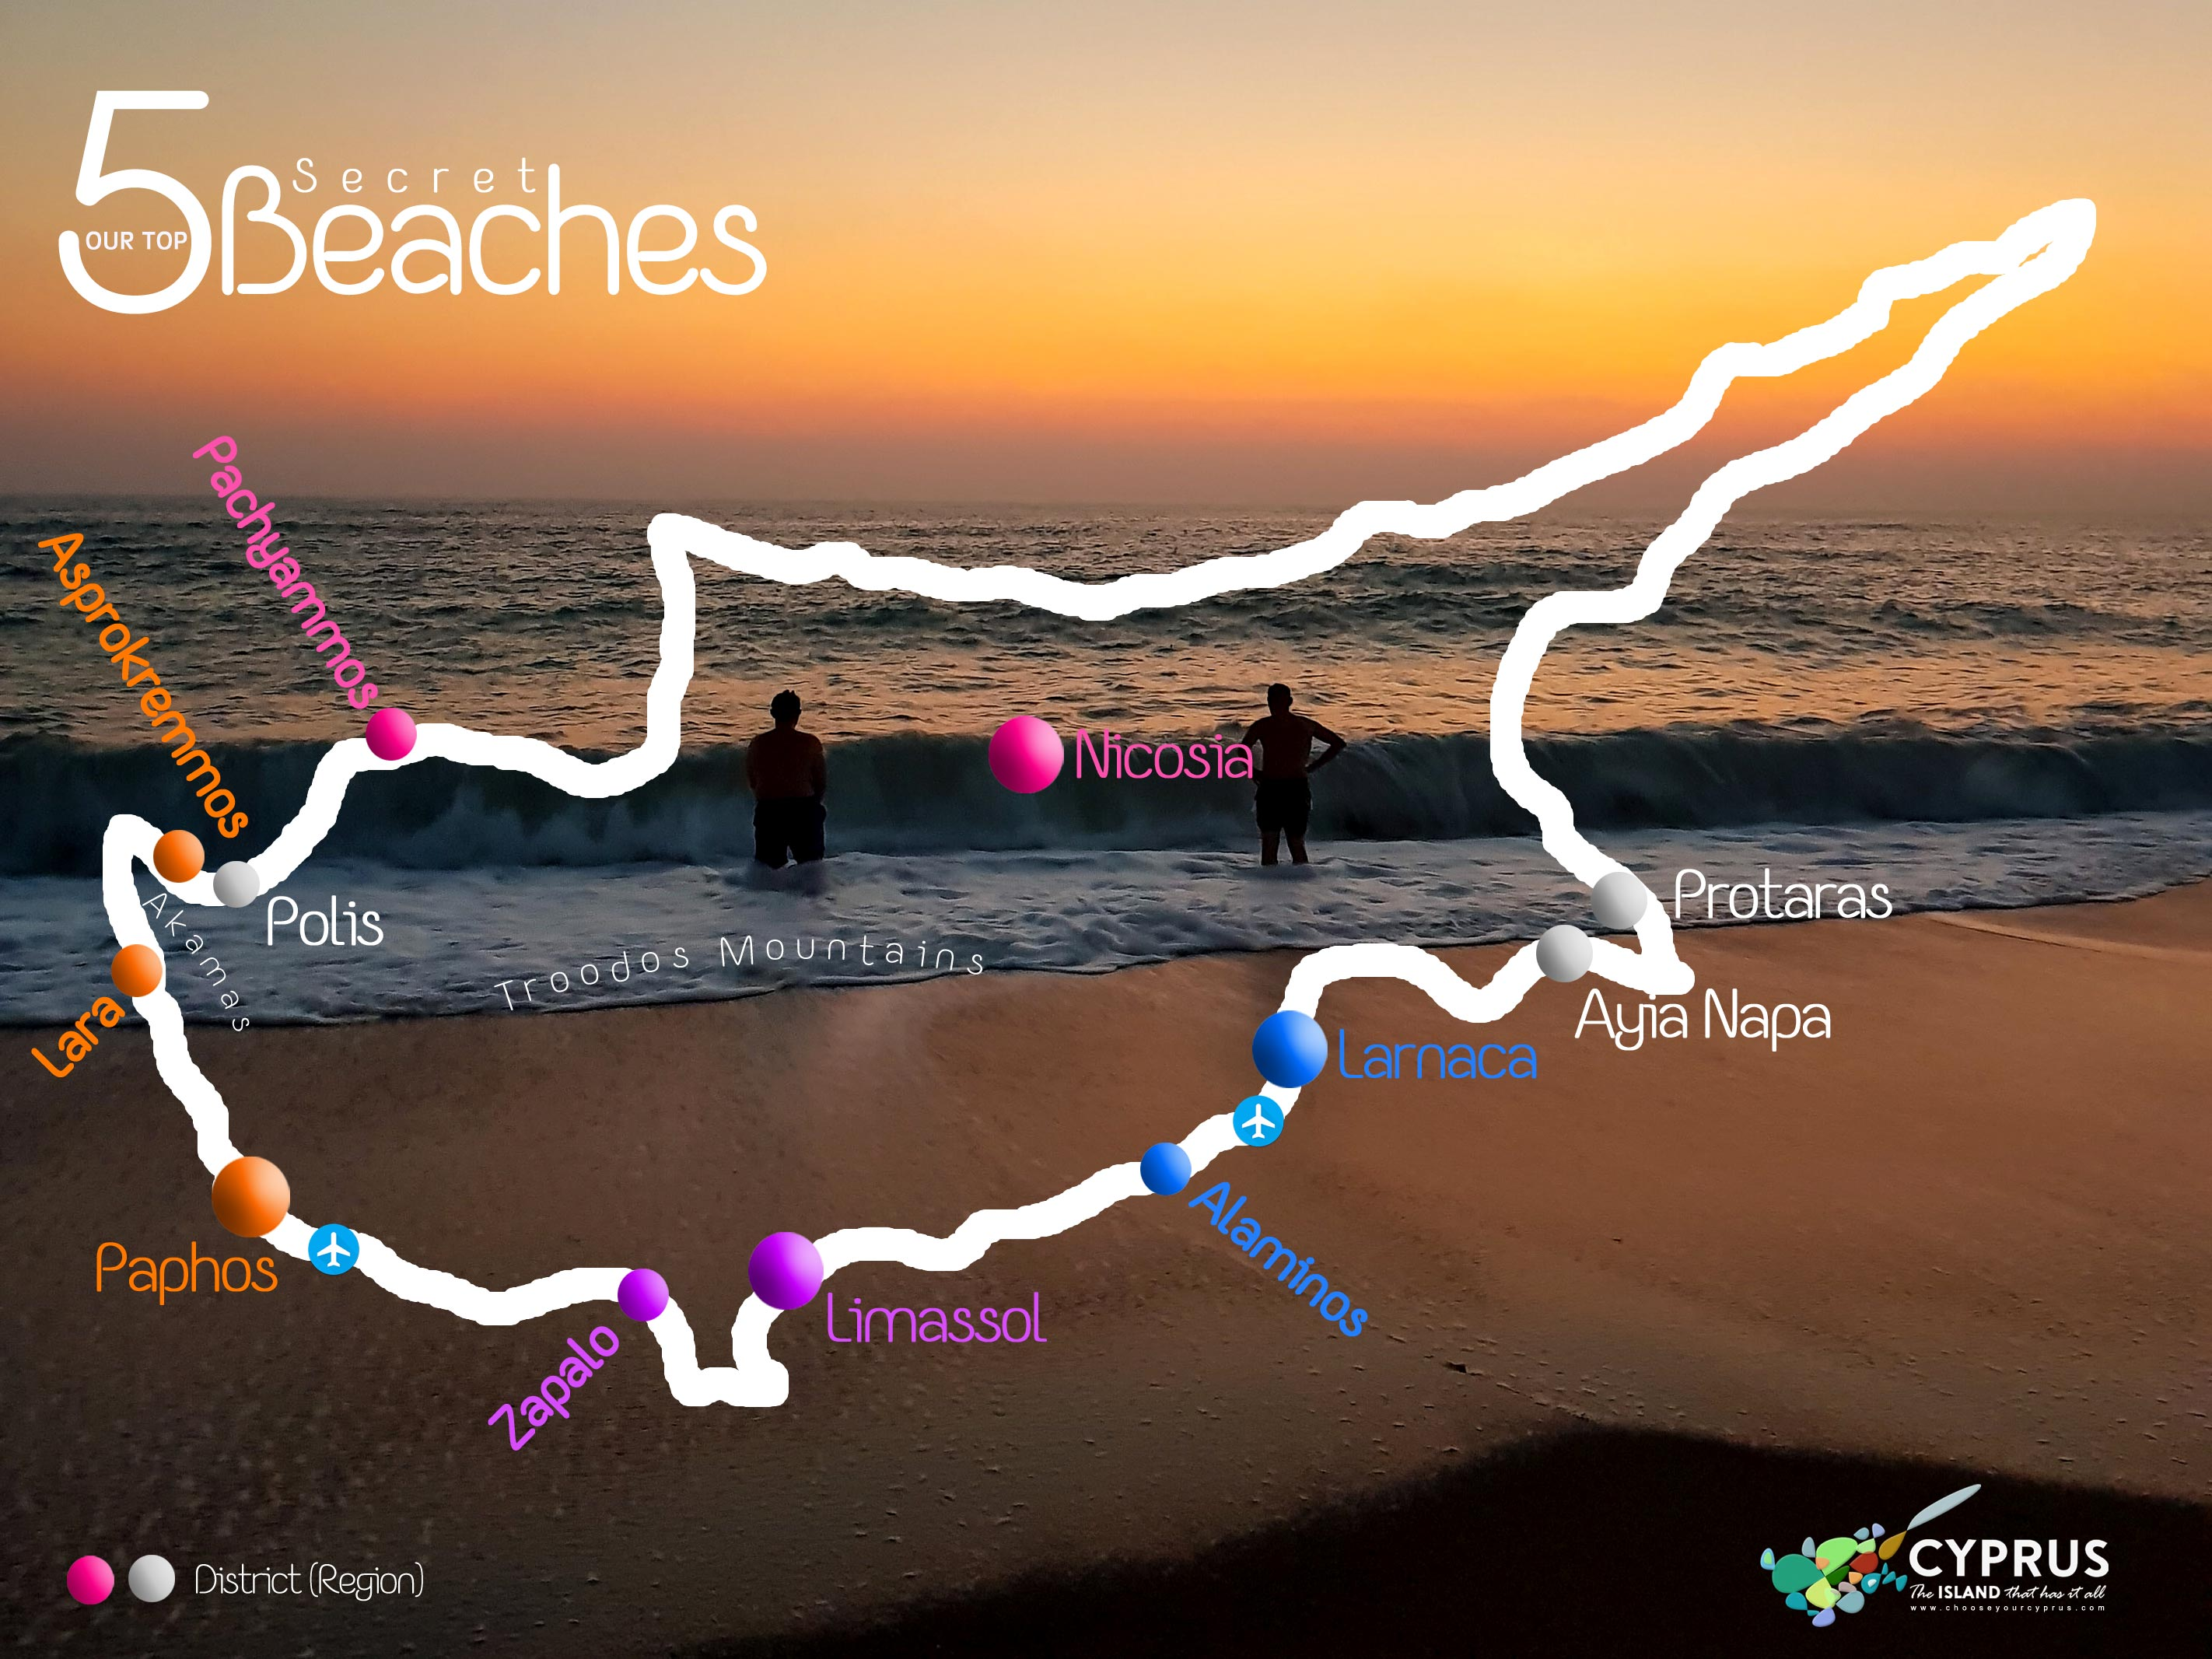 Our 5 Top Secret Beaches MAP